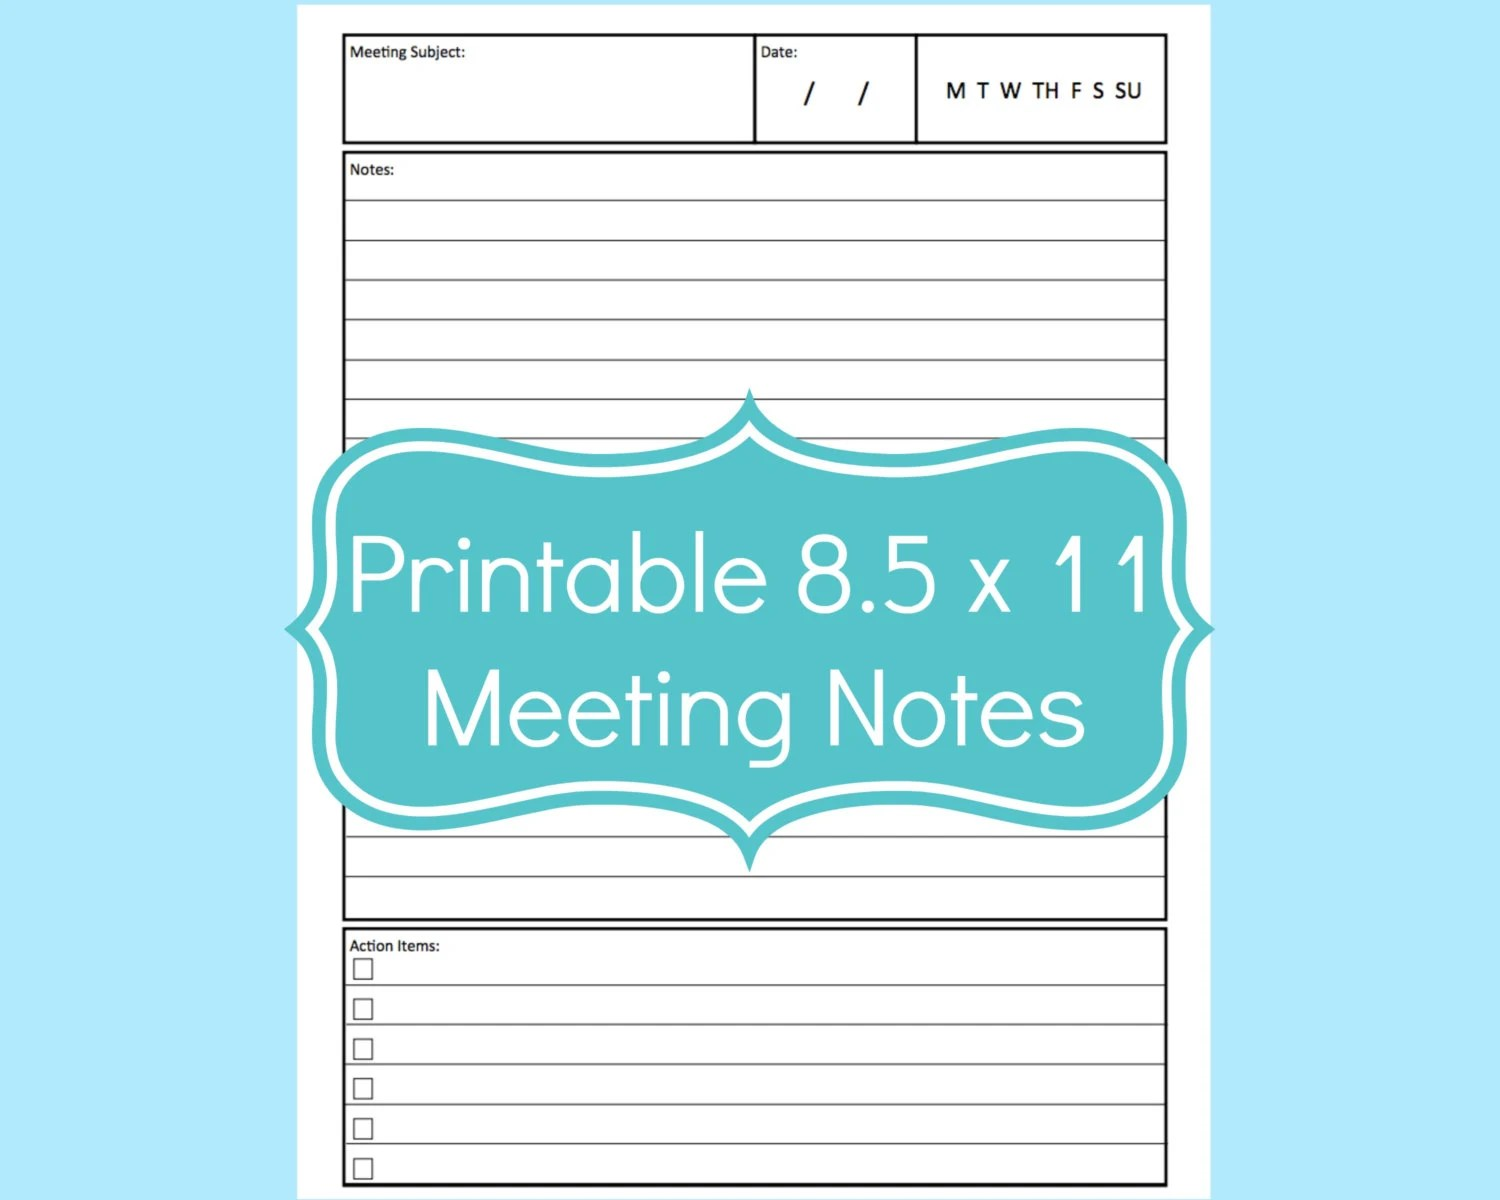 Meeting Notes Template Planner Meeting Notes Meeting